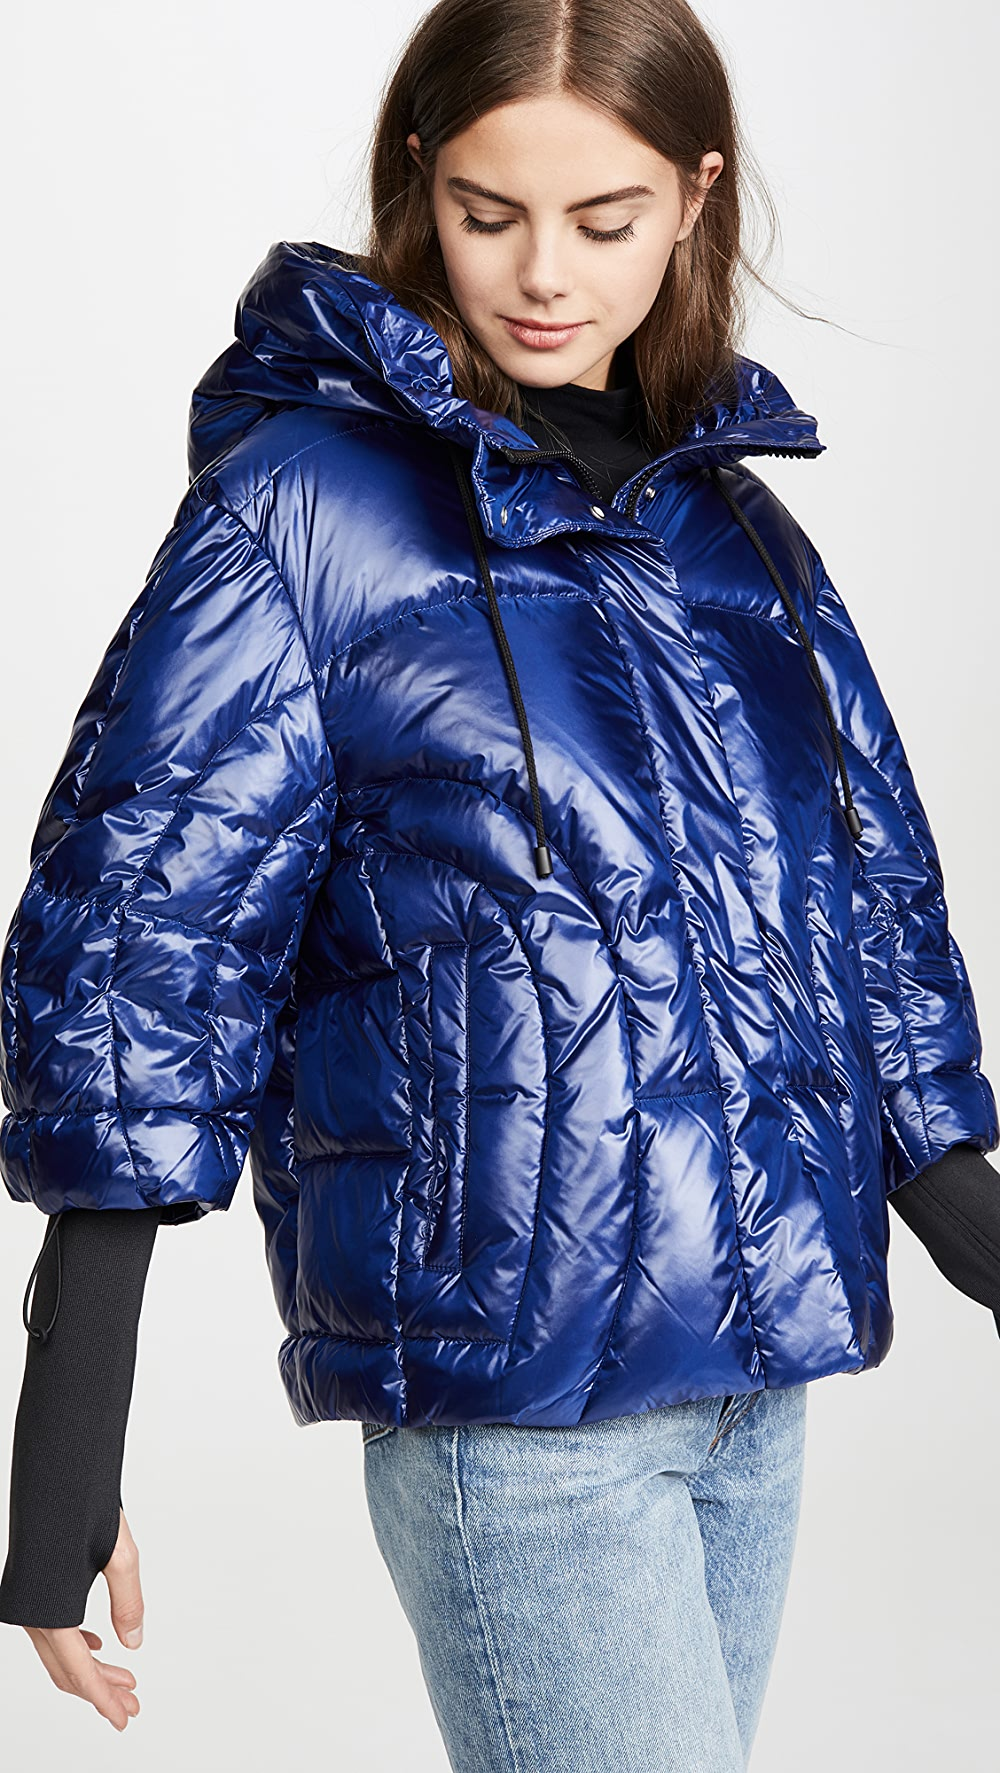 Adaptable Add Down - Oversized Hooded Down Jacket Suitable For Men, Women, And Children